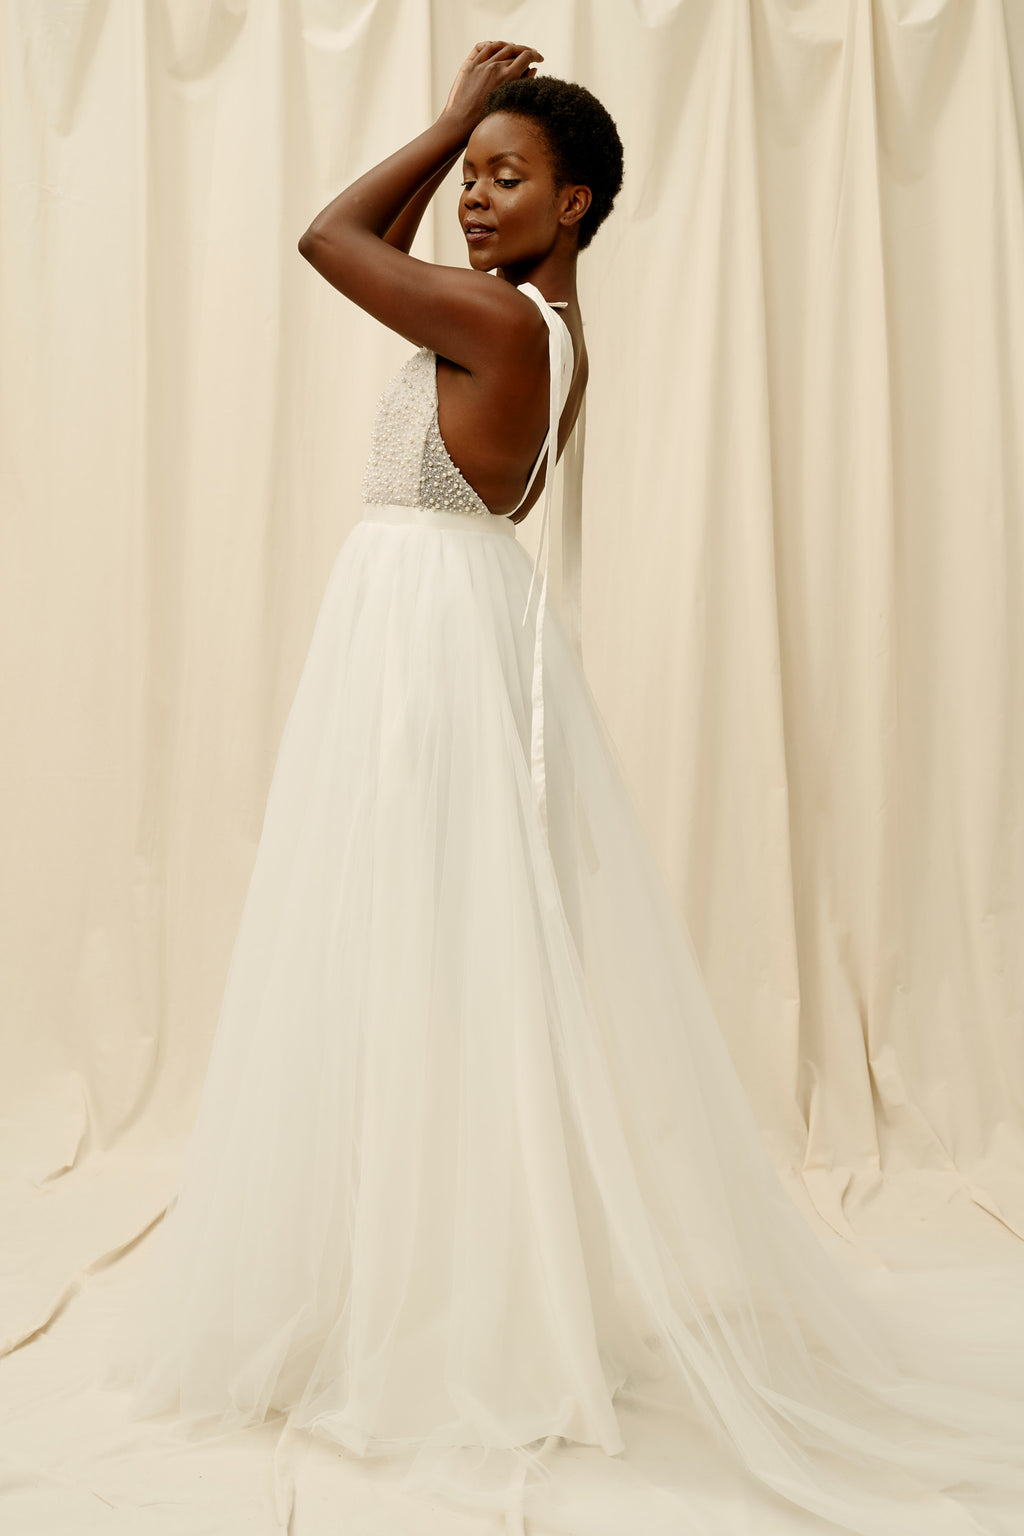 Backless wedding dress with a soft tulle skirt and shoulder tie straps